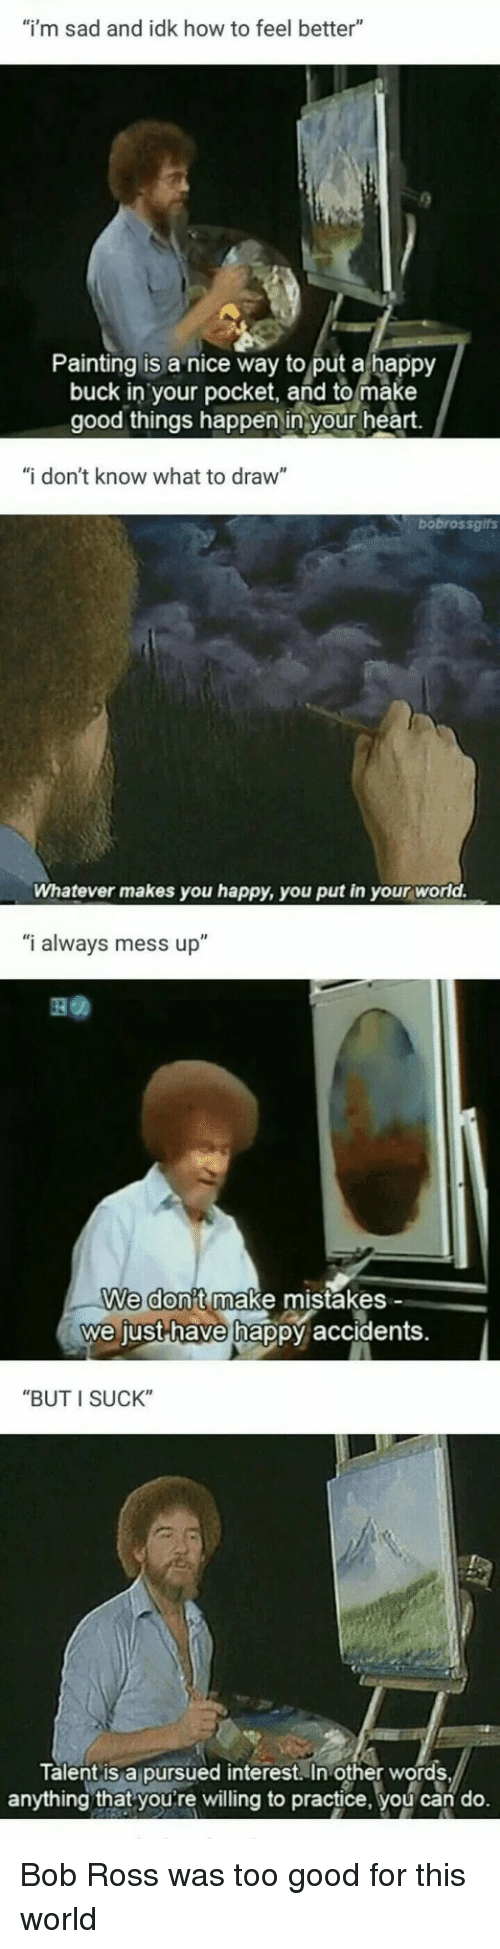 """in other words: """"i'm sad and idk how to feel better""""  Painting is a nice way to put a happy  buck in your pocket, and to make  good things happen in your heart.  """"i don't know what to draw""""  bobrossgifs  Whatever makes you happy, you put in your world.  """"i always mess up""""  We don't make mistakes -  we just-have hap  py accidents.  """"BUT I SUCK""""  Talent is a pursued interest. In other words  anything that youre willing to practice, you can do. Bob Ross was too good for this world"""